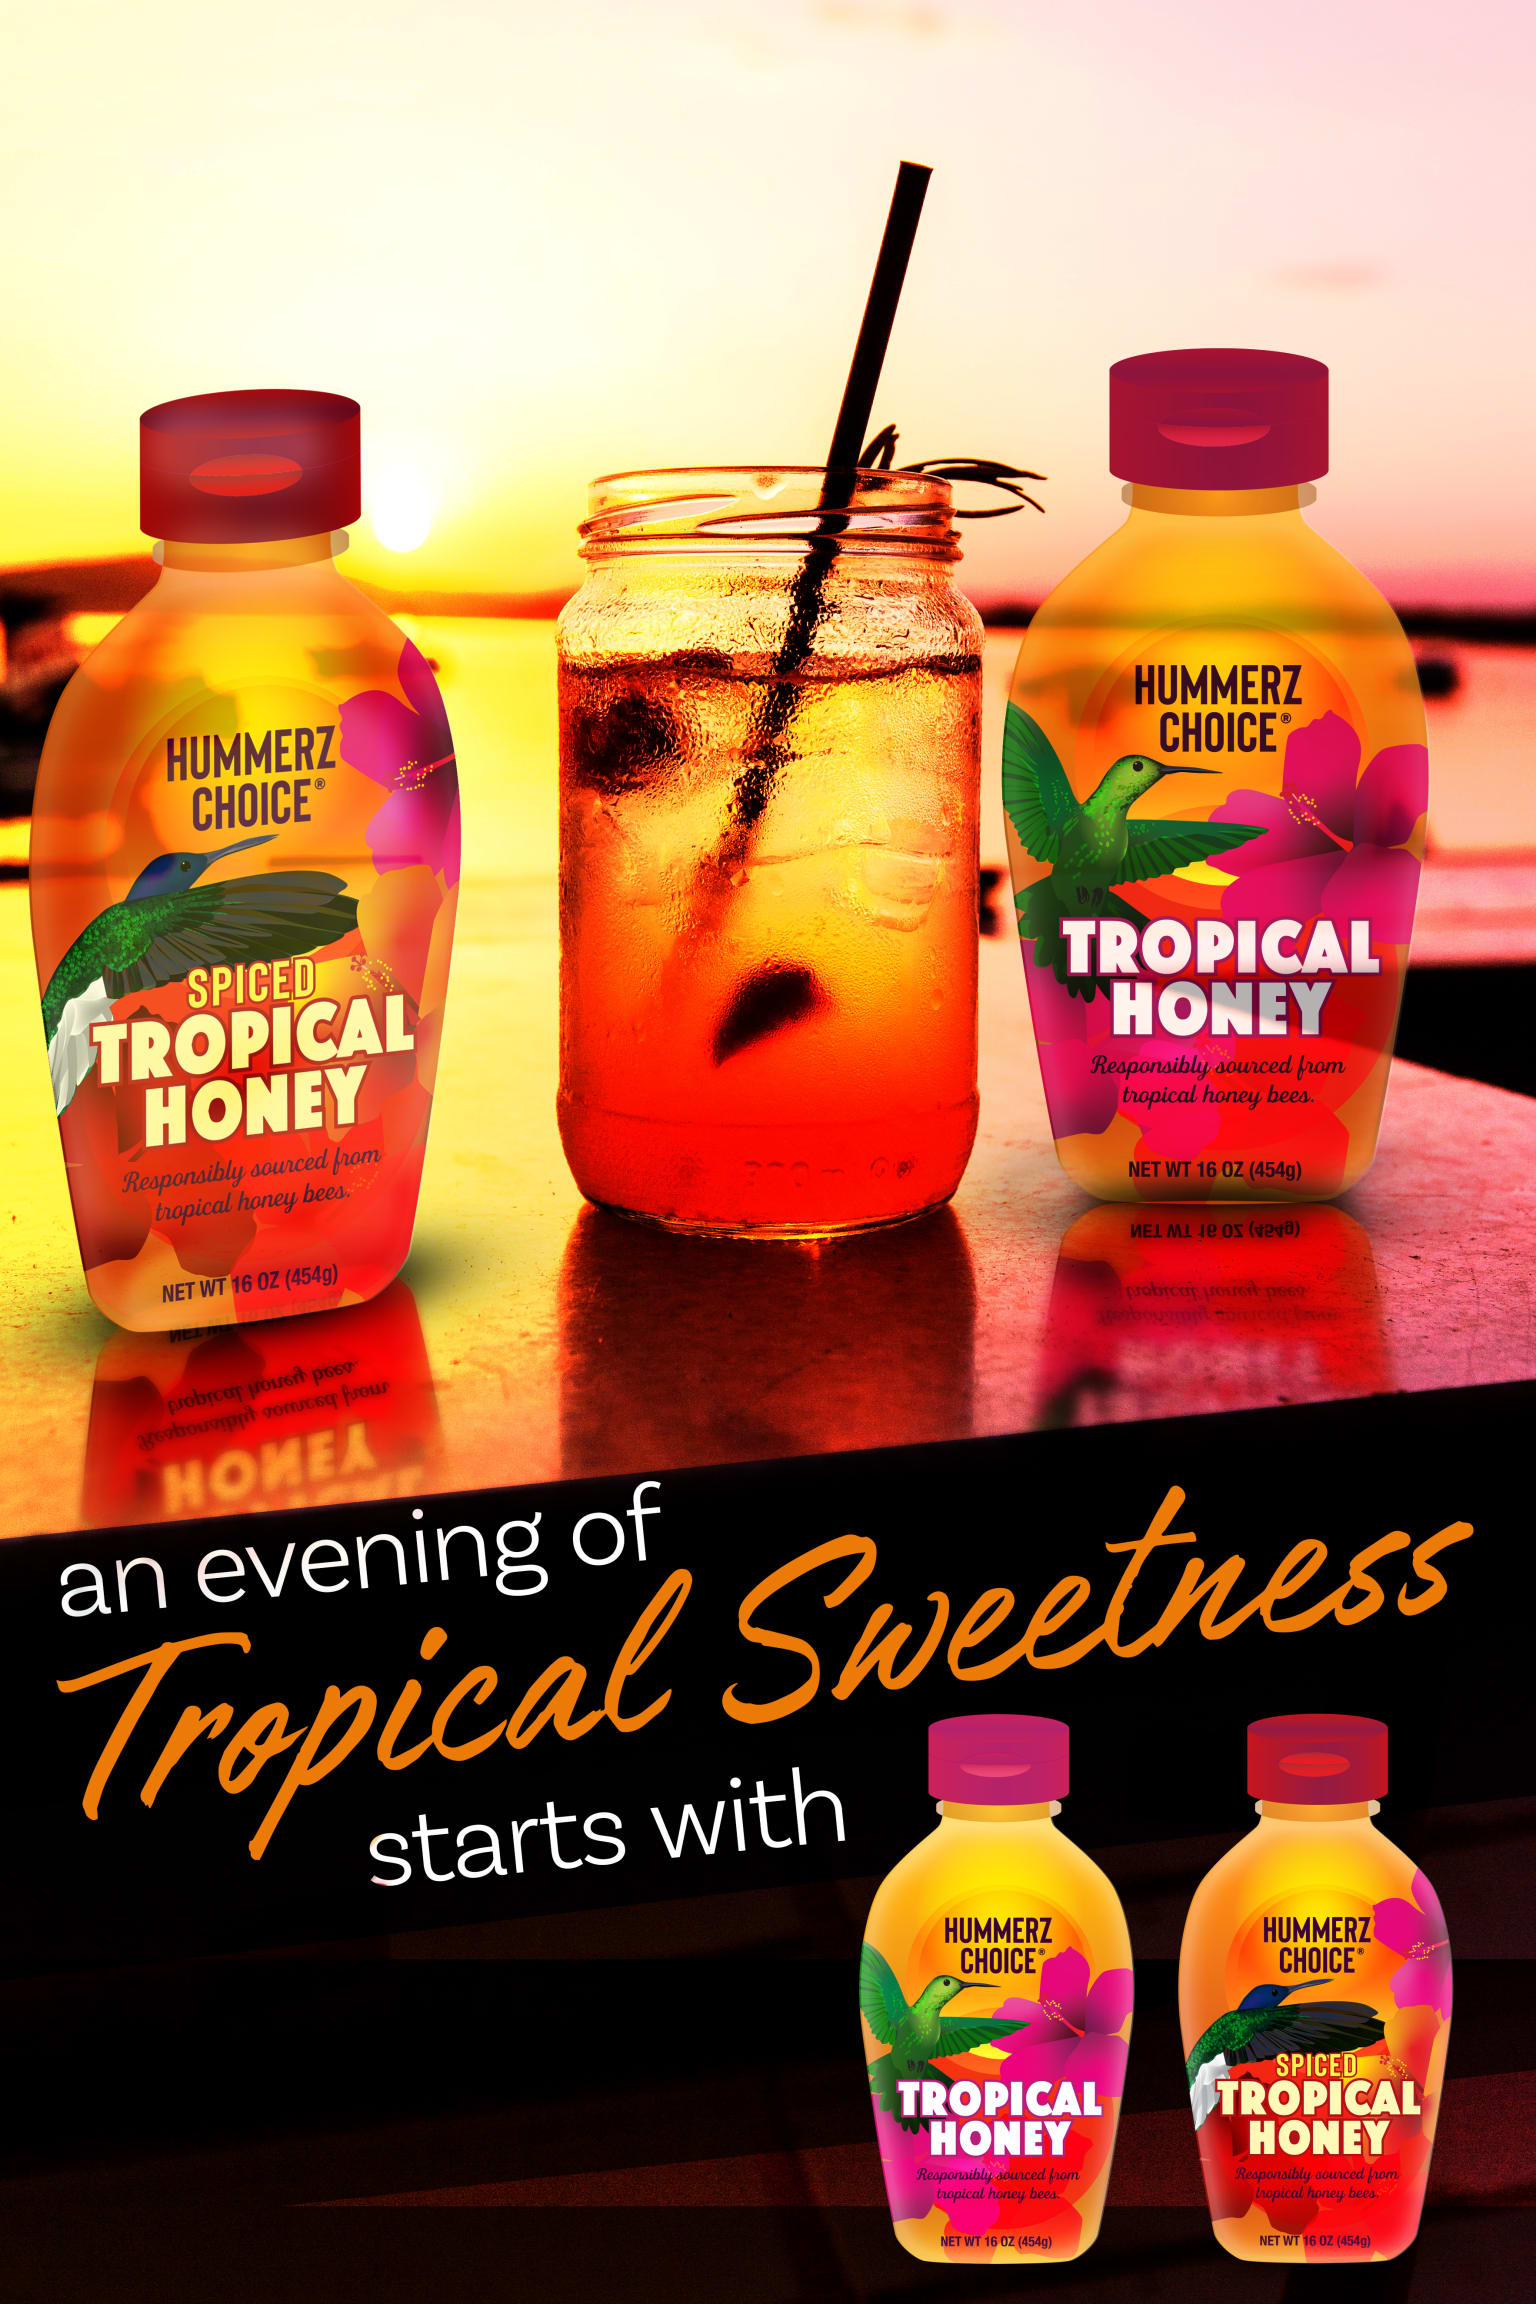 Hummerz Choice Tropical Honey